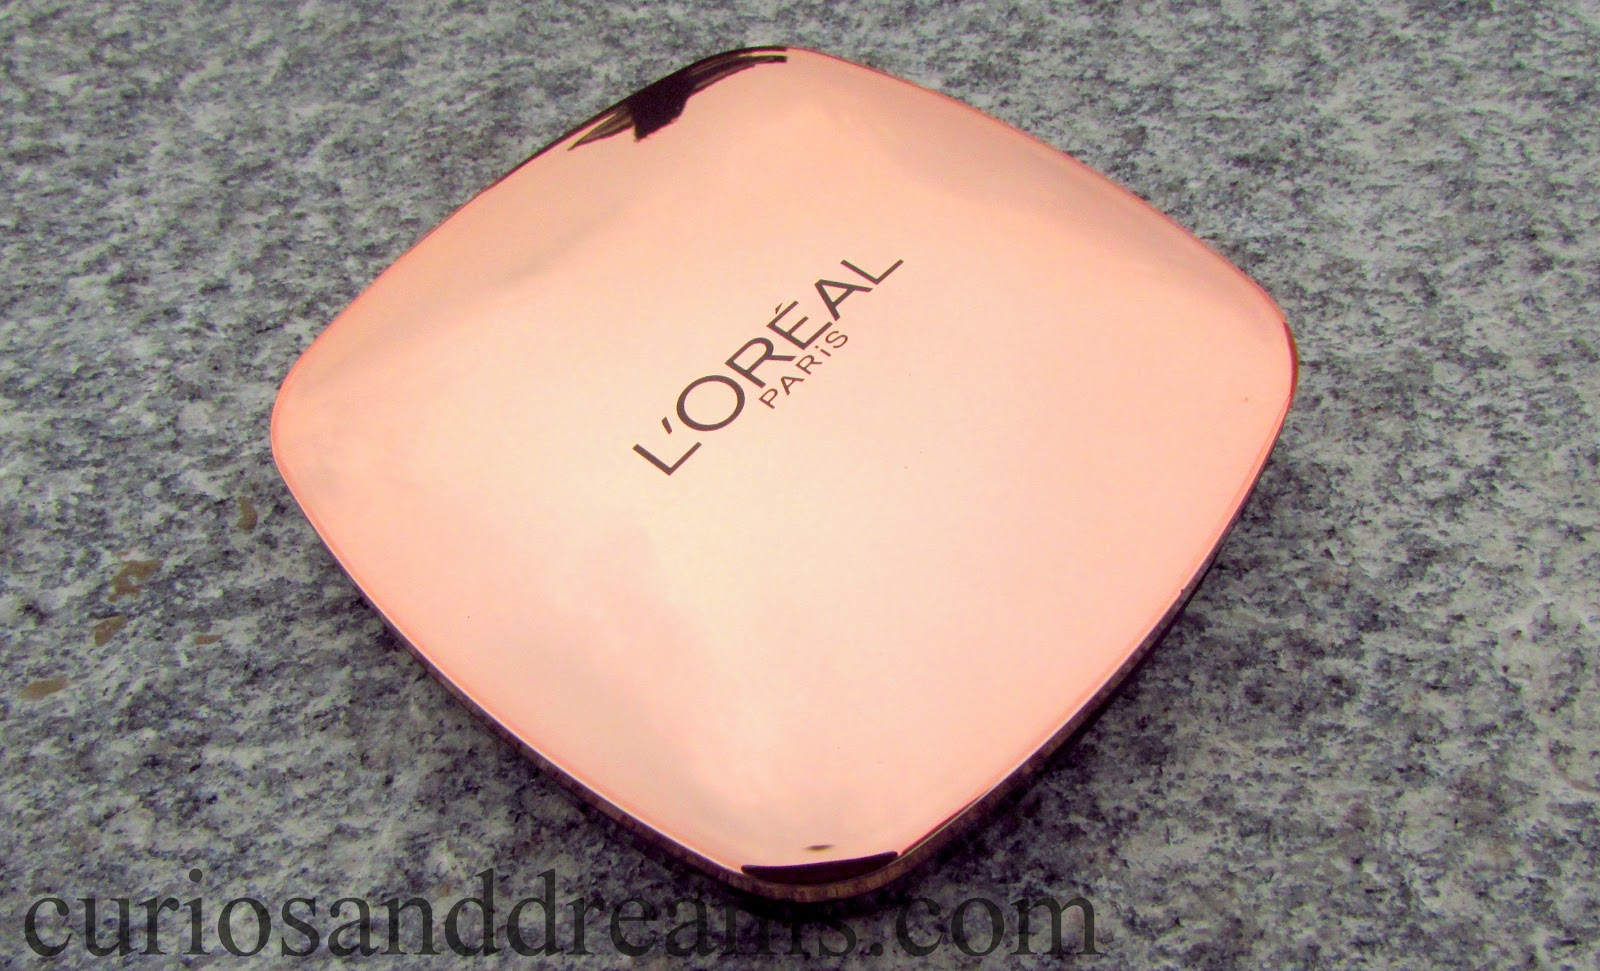 L'Oreal Paris Lucent Magique Blush Fuchsia Flush review, L'Oreal Paris Lucent Magique Blush review, L'Oreal Lucent Magique Blush